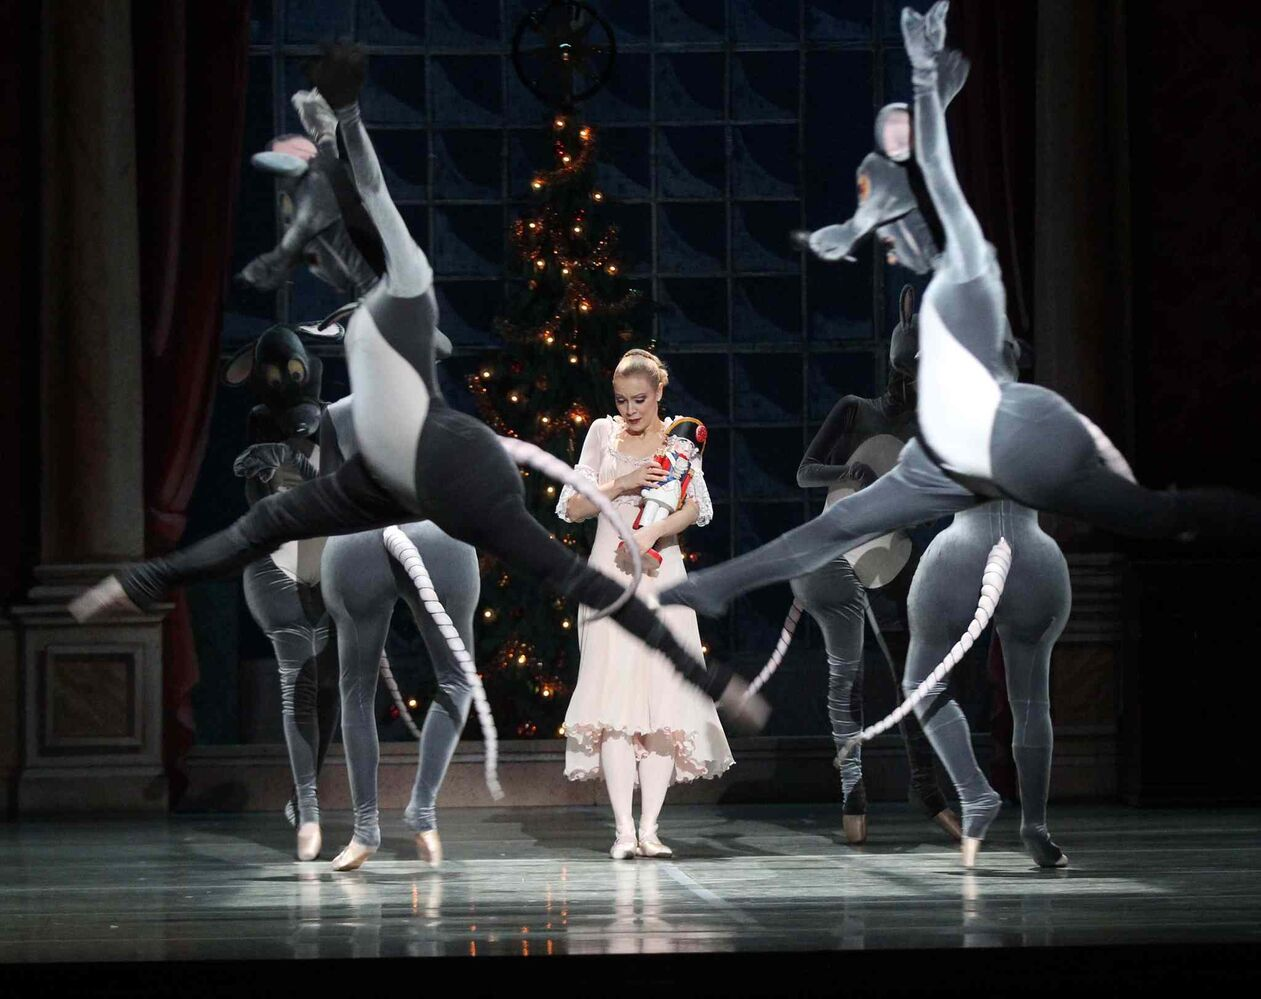 Canada's Royal Winnipeg Ballet production of the Nutcracker runs until Dec. 29 at the Centennial Concert Hall. (Joe Bryska / Winnipeg Free Press)